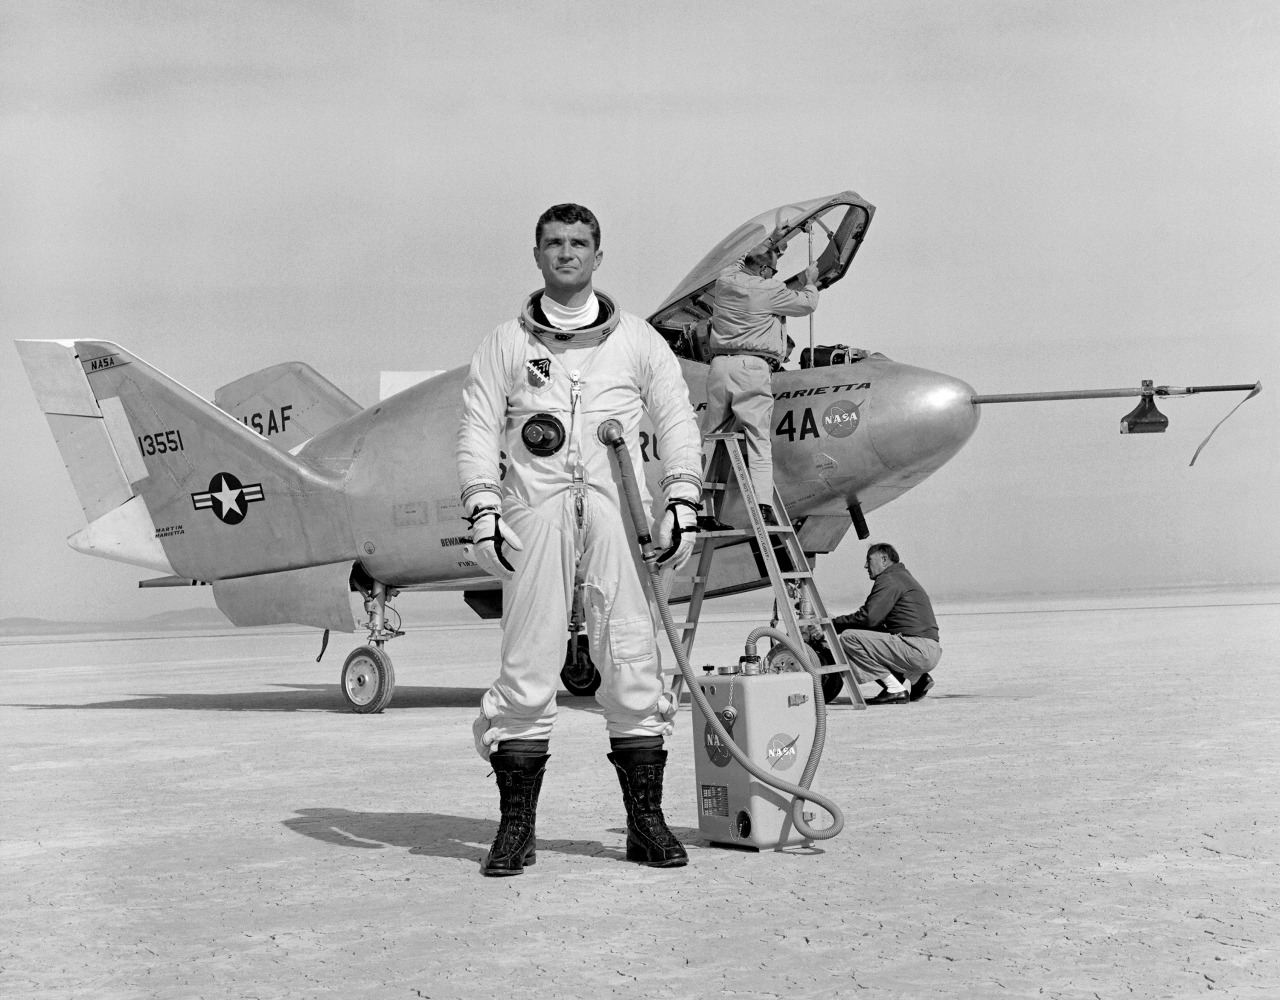 Air Force pilot Major Cecil Powell stands in front of the X-24A after a research flight. Built for the Air Force by Martin Marietta, the X-24A was a bulbous vehicle shaped like a tear drop, with three vertical fins at the rear for directional control. It weighed 6,270 pounds, was just over 24 feet long, and had a width of nearly 14 feet. The first unpowered glide flight of the X-24A was on April 17, 1969. The pilot was Air Force Major Jerauld Gentry. Gentry also piloted the vehicle on its first powered flight March 19, 1970. It was flown 28 times in a program which, like the HL-10, helped validate the concept that a space shuttle vehicle could be landed unpowered. Fastest speed in the X-24A was l,036 mph (Mach 1.6). The pilot was John Manke, who also reached the highest altitude in the vehicle, 71,400 feet. He was also the pilot on its final flight June 4, 1971. The X-24A was later modified with a different nose configuration and became the X-24B.